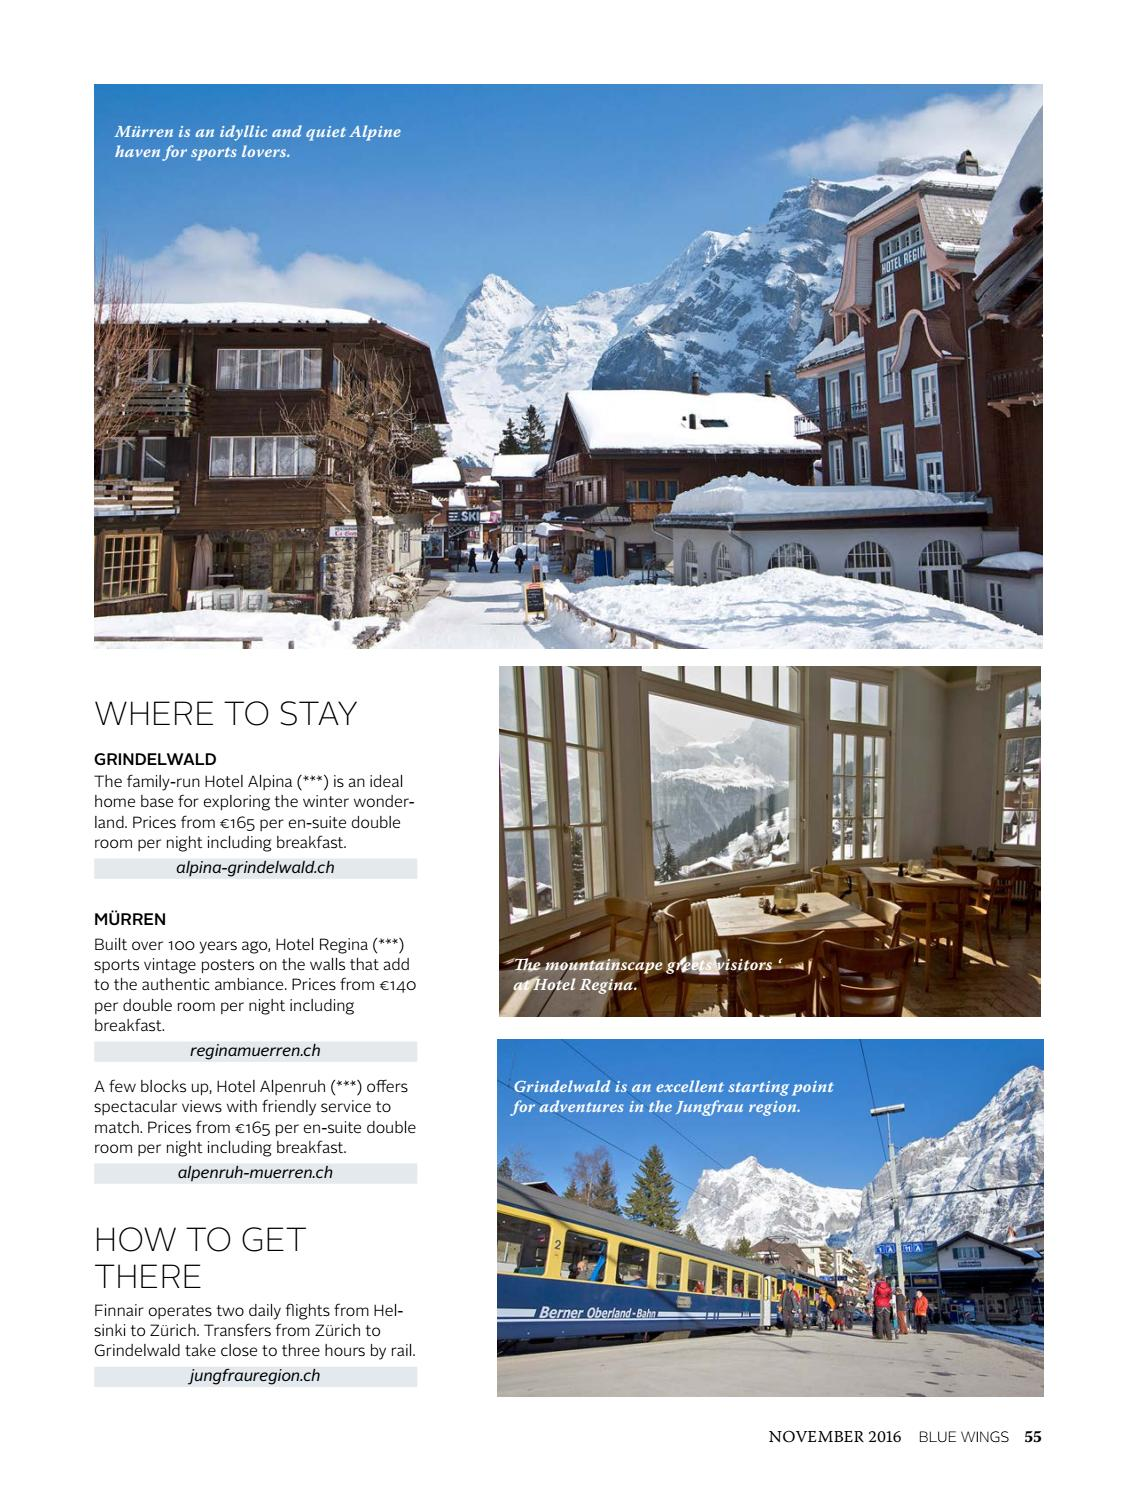 Blue Wings Courage Issue November By FinnairBlueWings Issuu - Hotel alpina grindelwald